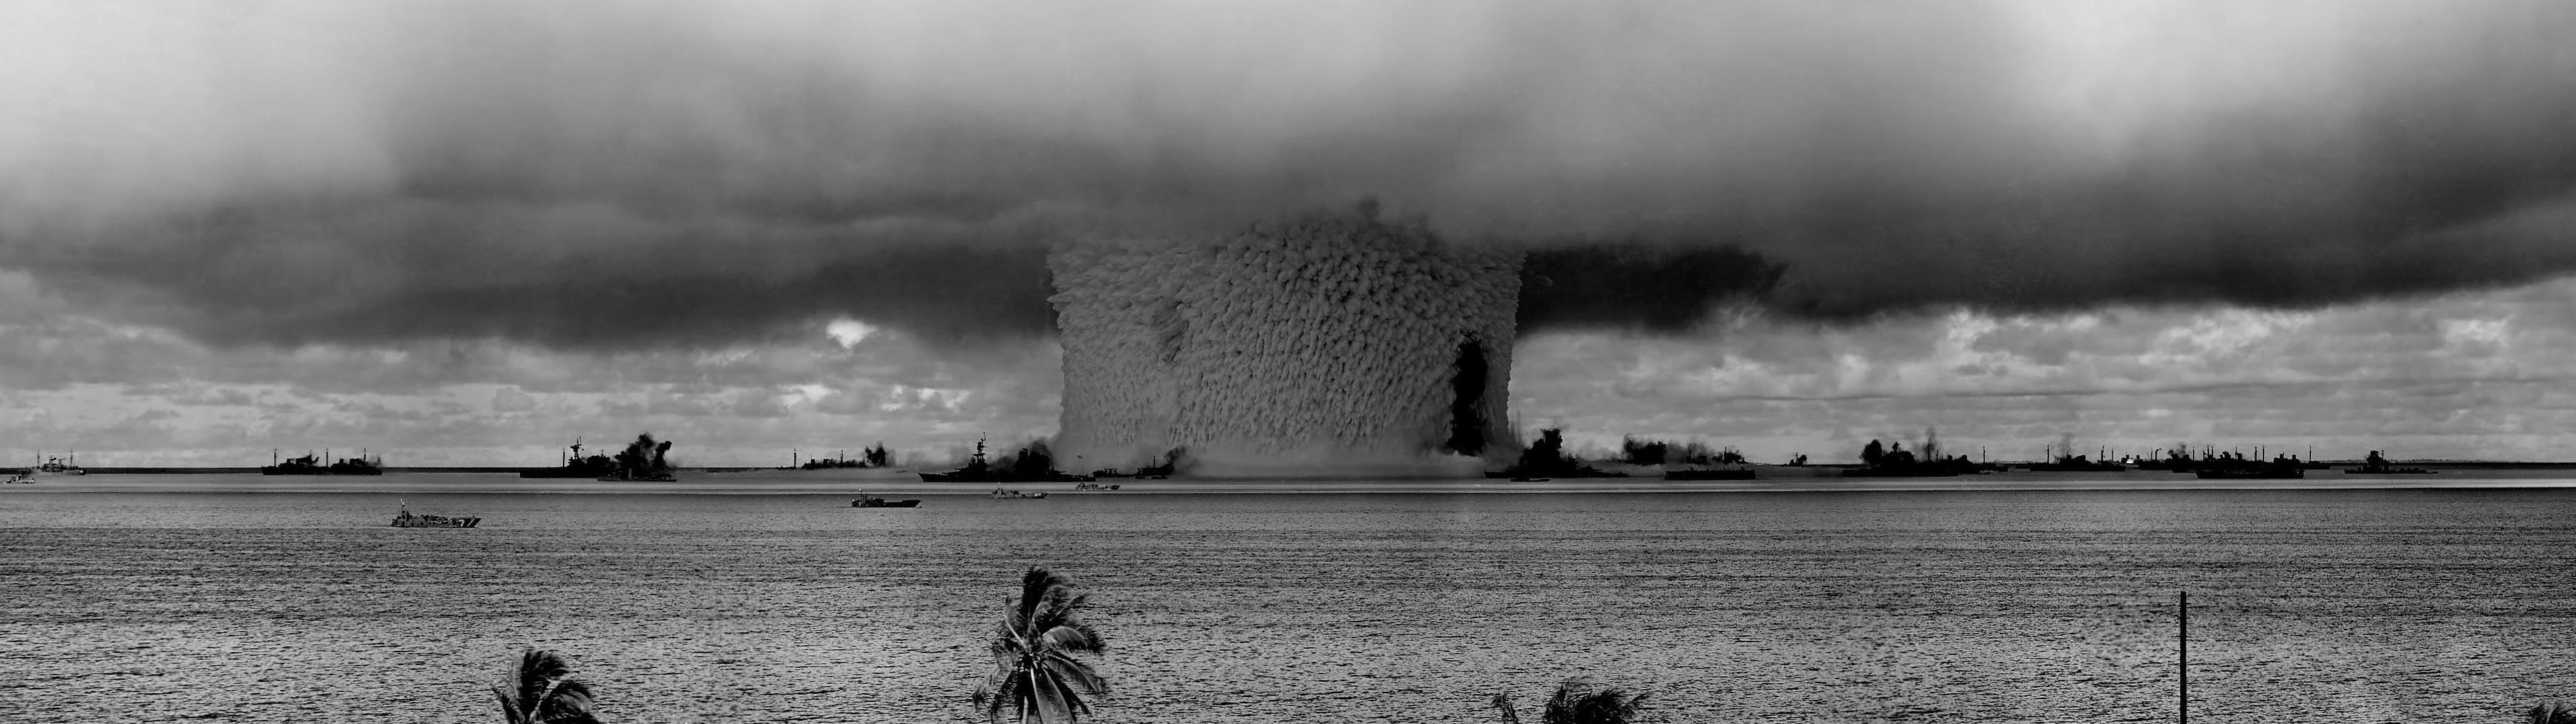 3840x1080 #nuclear, #Bikini Atoll, #multiple display, #war wallpaper